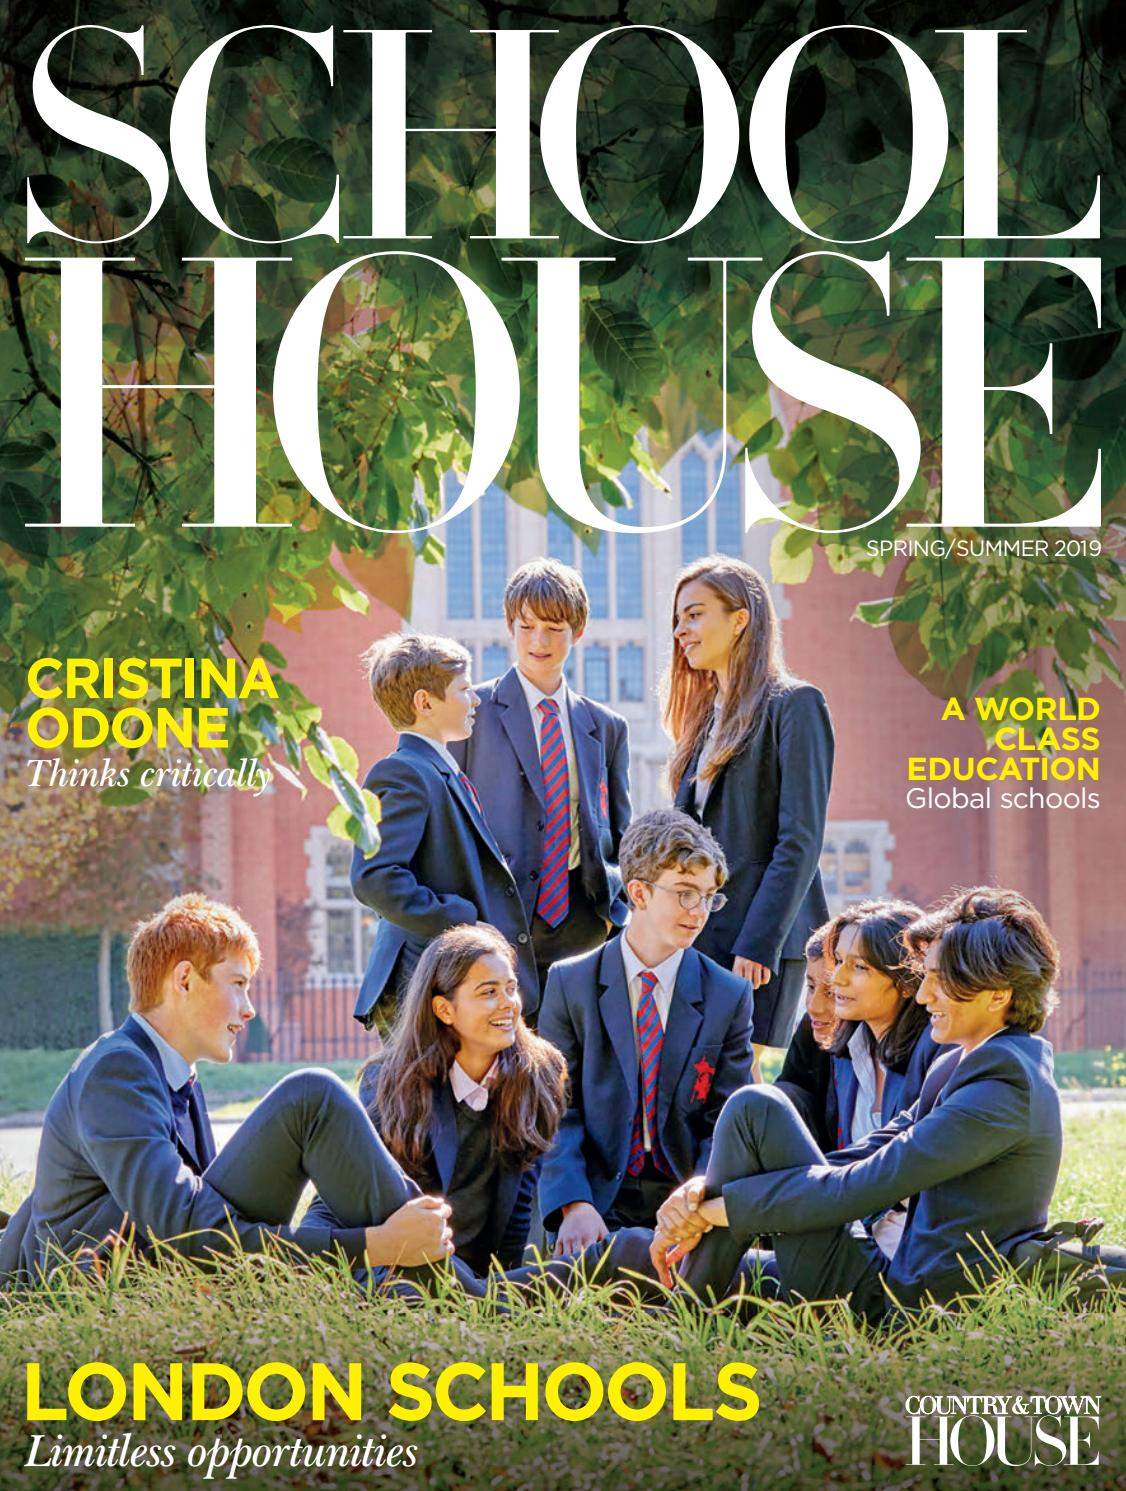 9c550eb890b1 School House - Spring/Summer 2019 by Country & Town House Magazine - issuu